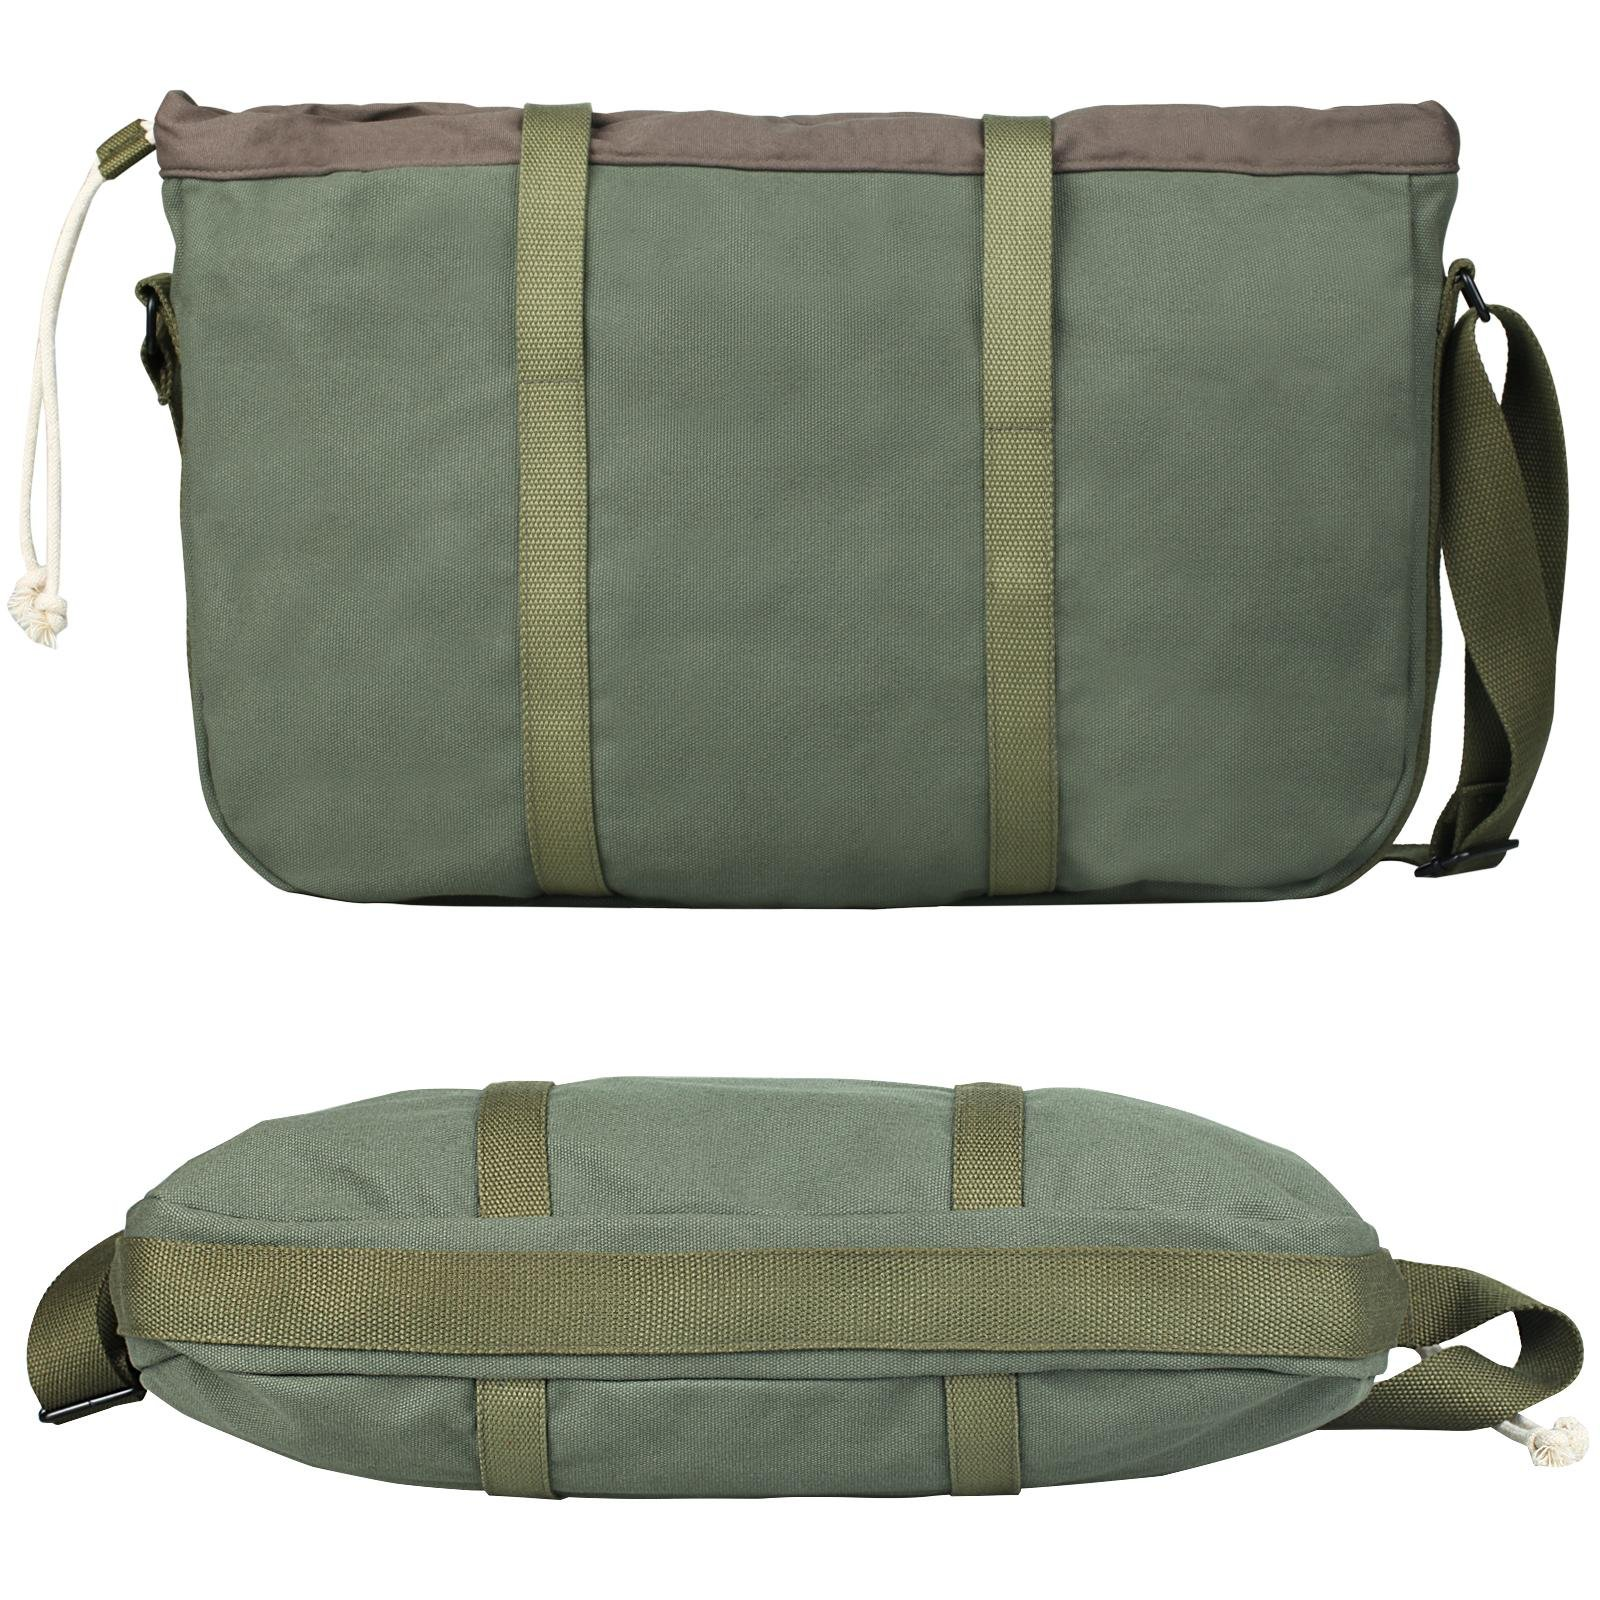 Superzero Water Resistant Canvas Messenger Shoulder Bag For MenWomen,Vintage Business Laptop Computer Bag Fit Laptops 13'', 14'' and up to 15.6 Inches by Superzero (Image #3)